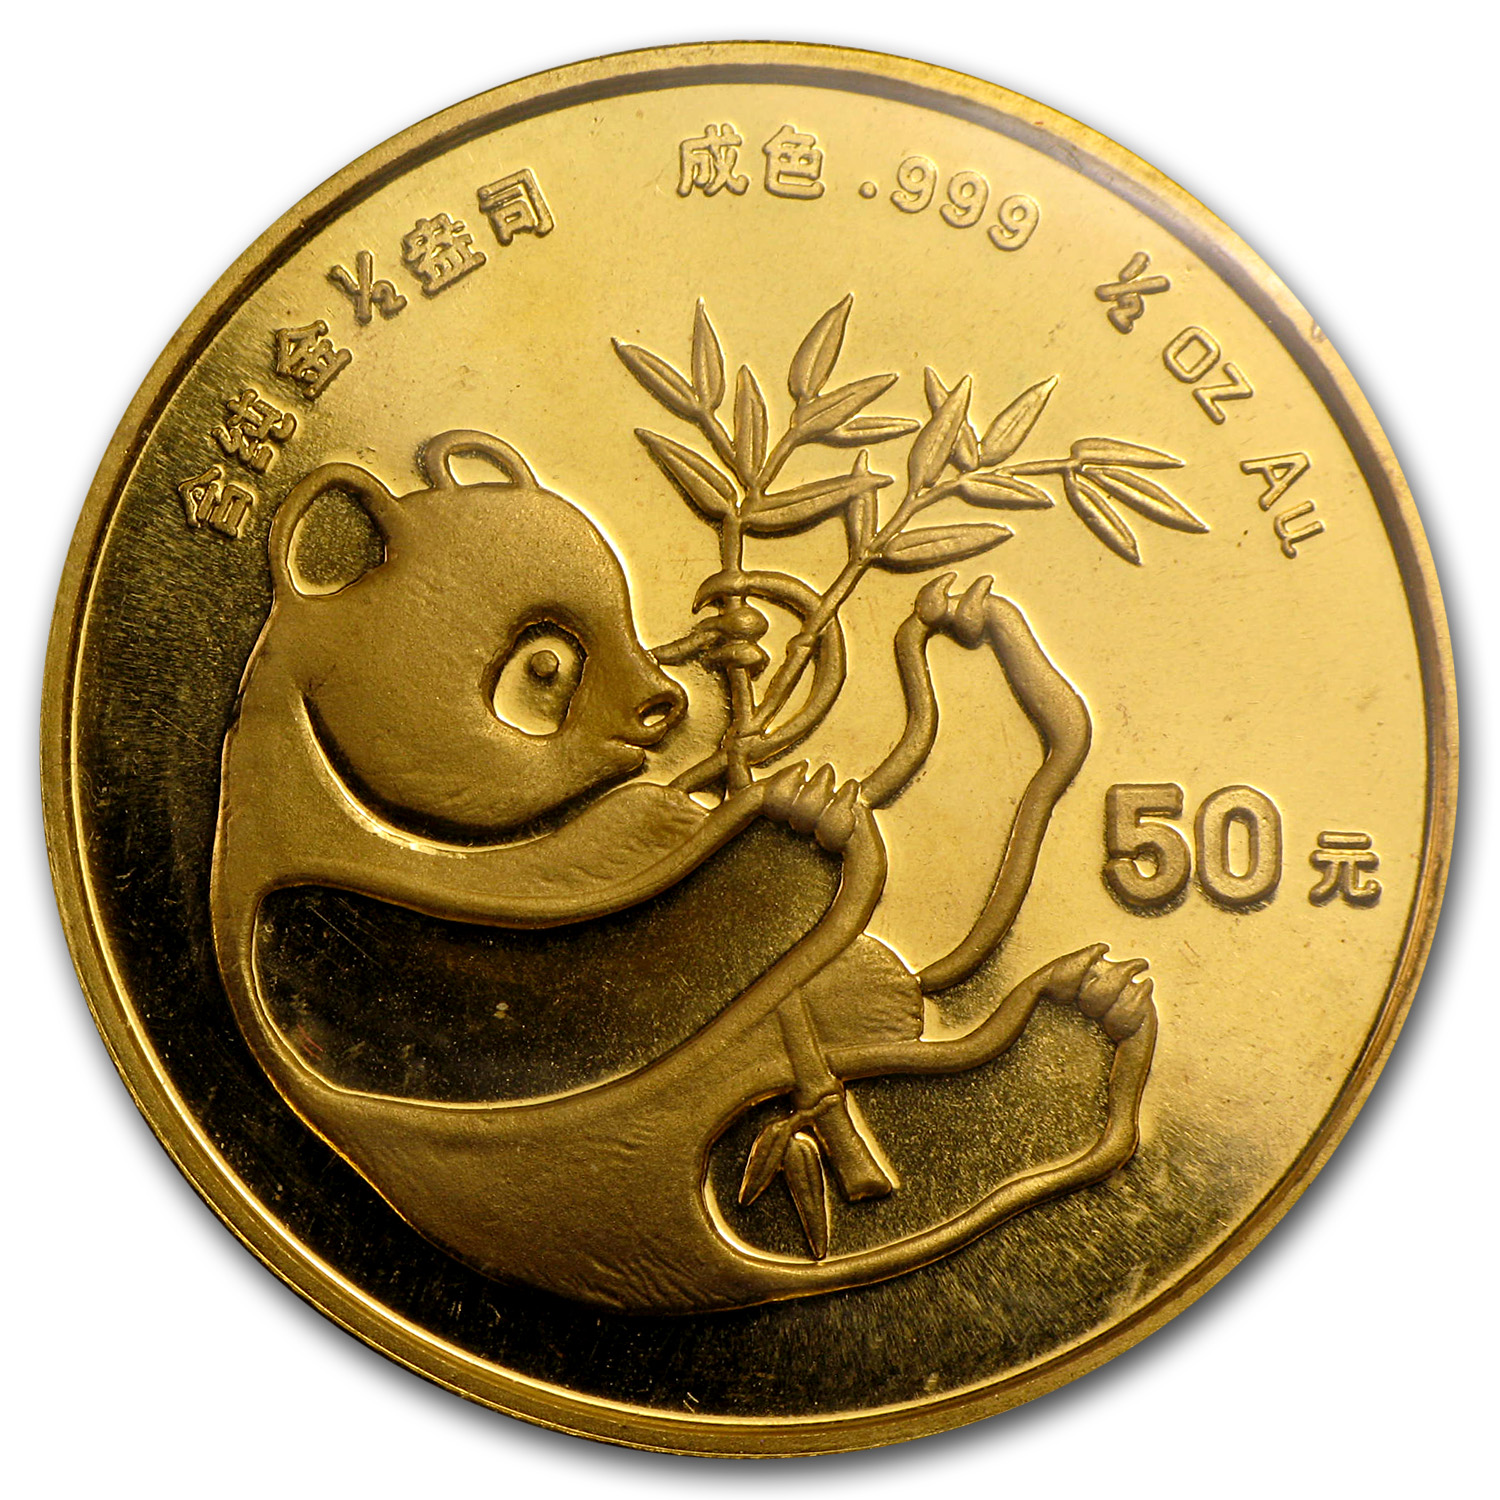 1984 1/2 oz Gold Chinese Panda BU (Sealed)